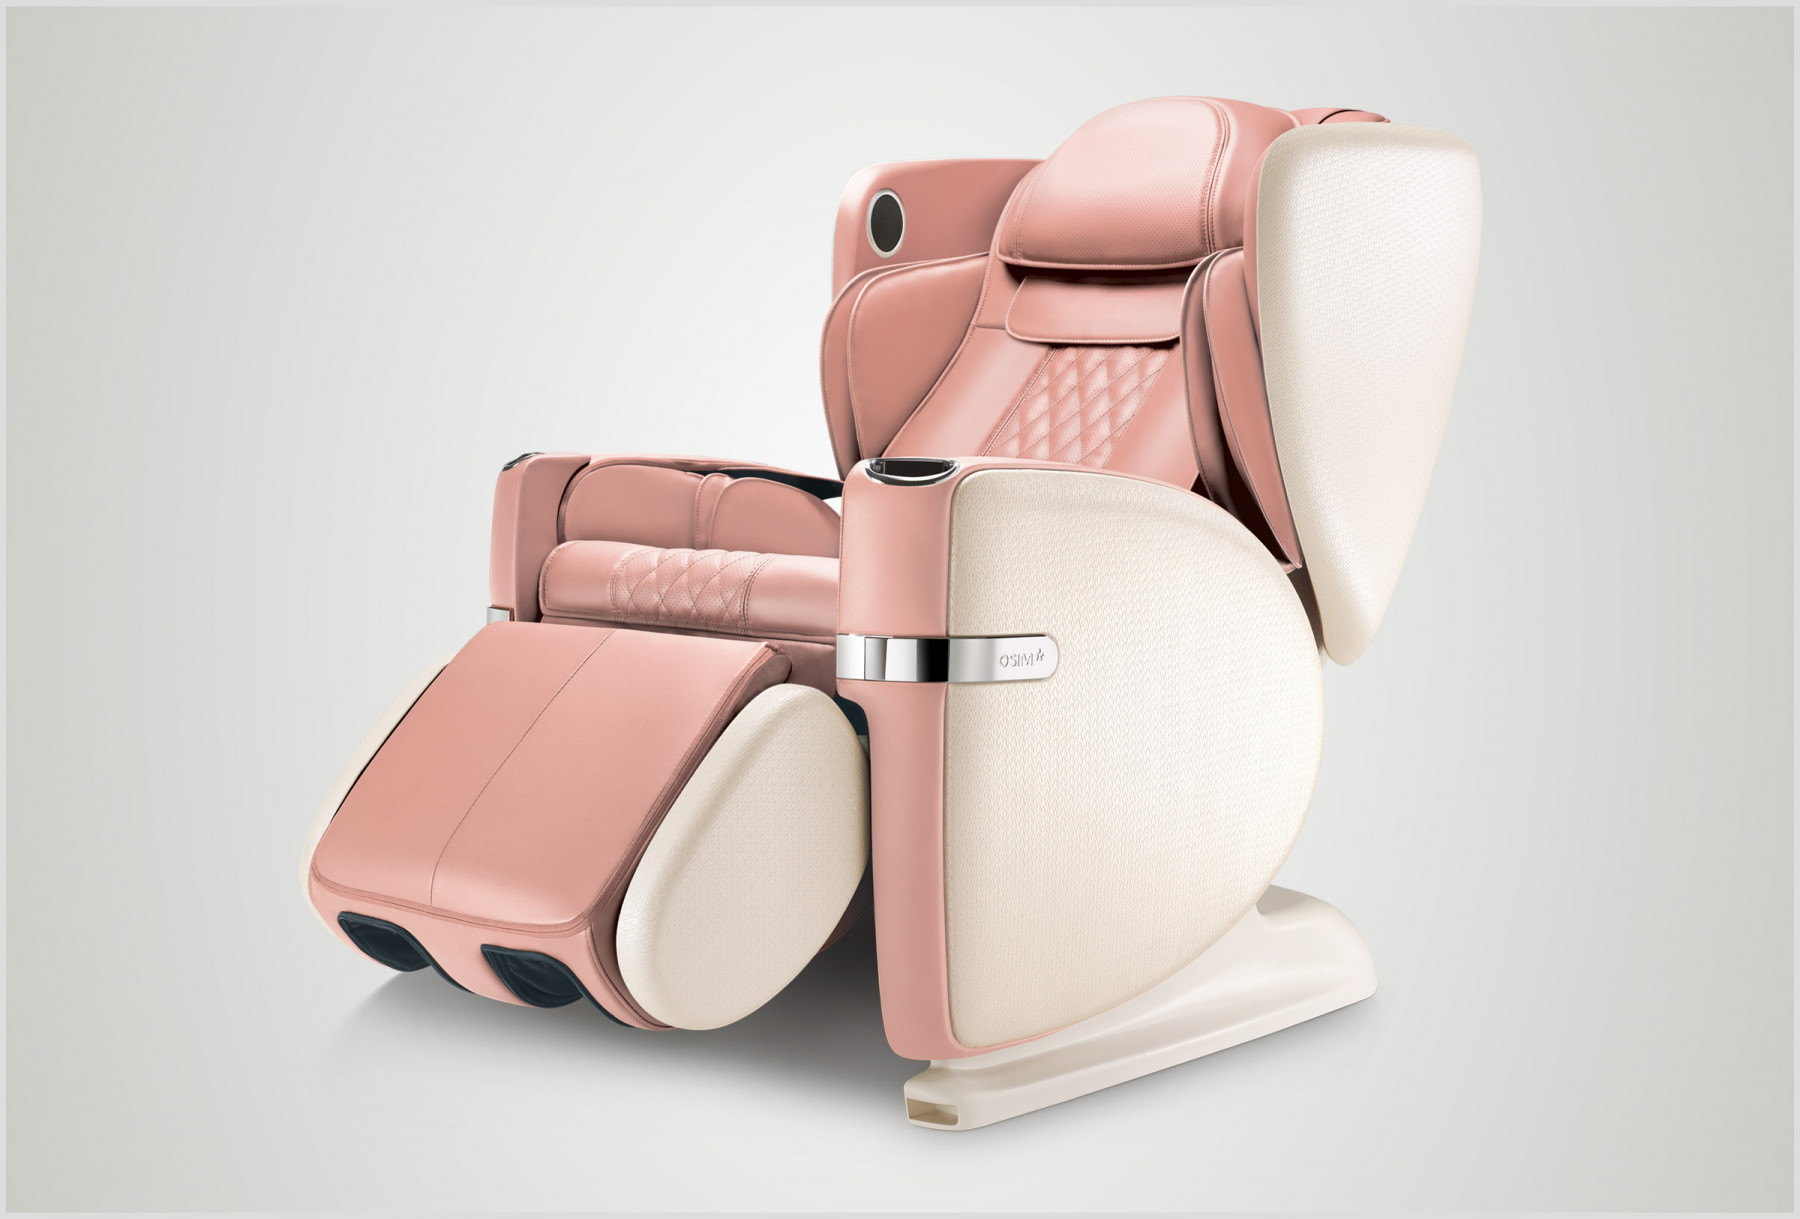 Scanning all available deals for Osim Massage Chair Parts shows that the average price across all deals is $ The lowest price is $ from ebay while the highest price is $2, from Appliances Connection.